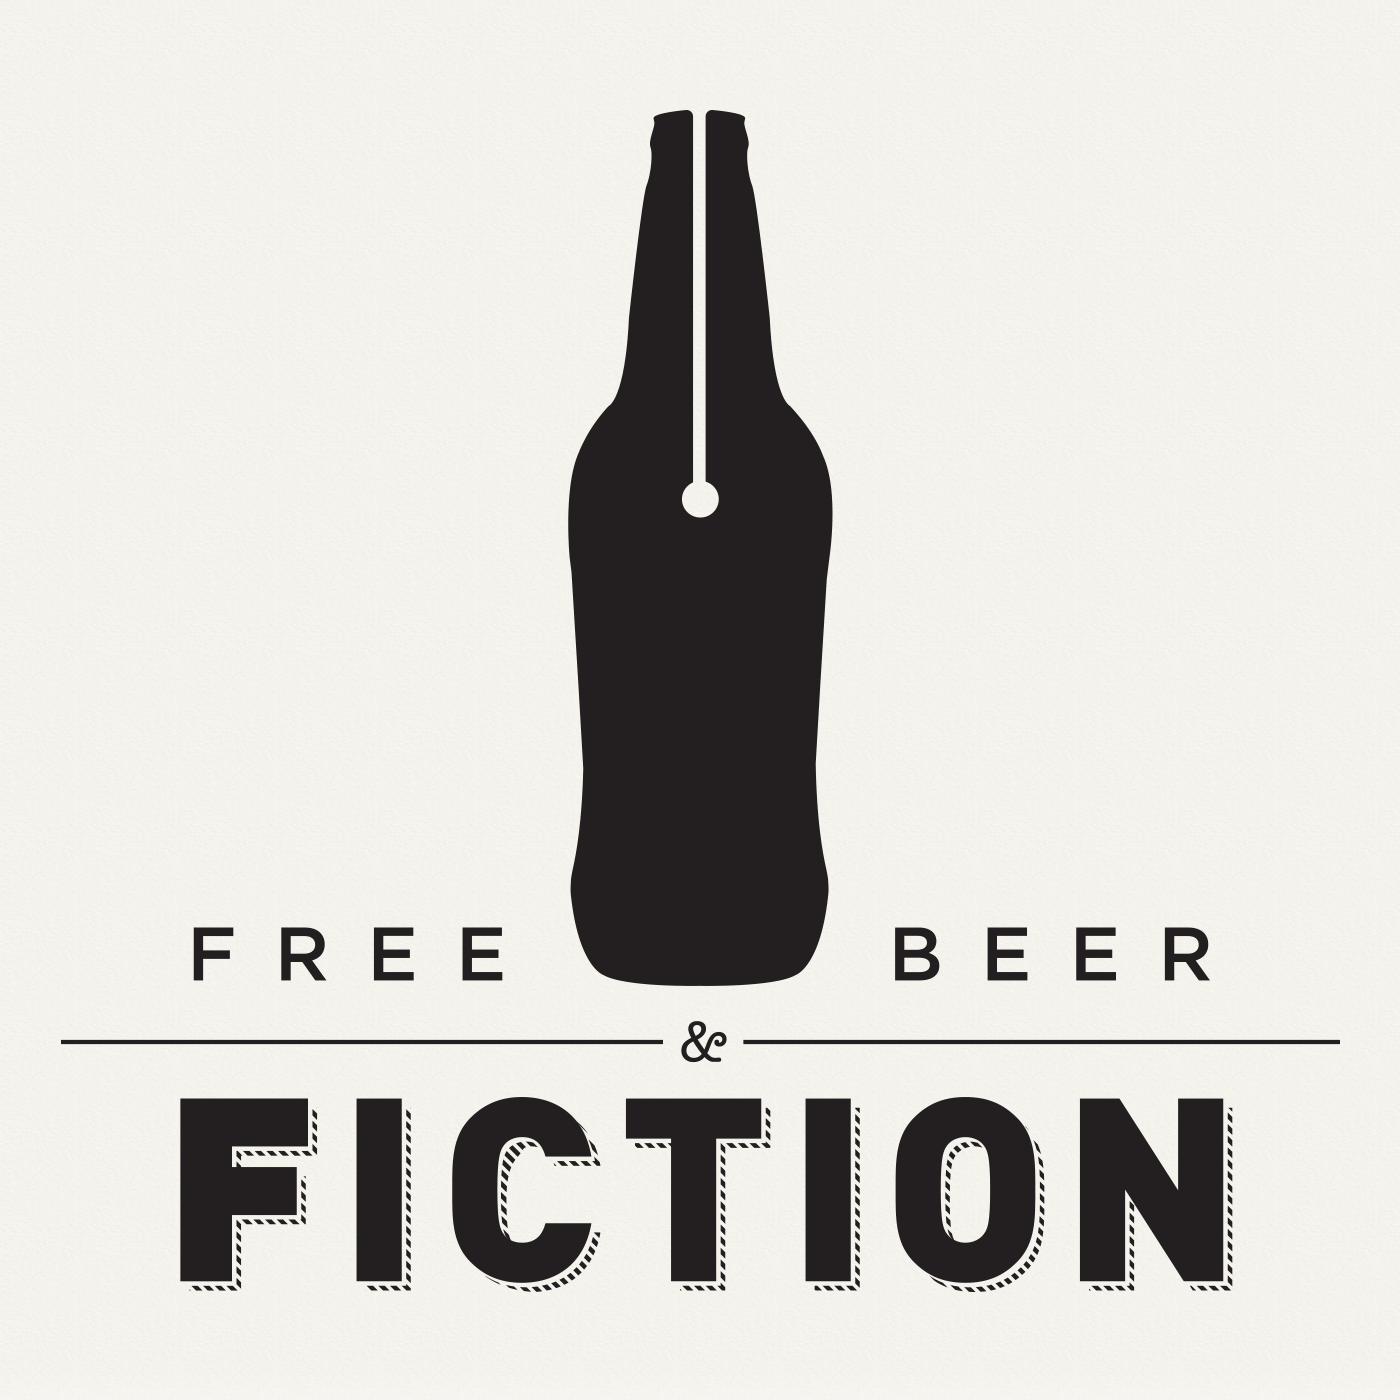 Free Beer & Fiction